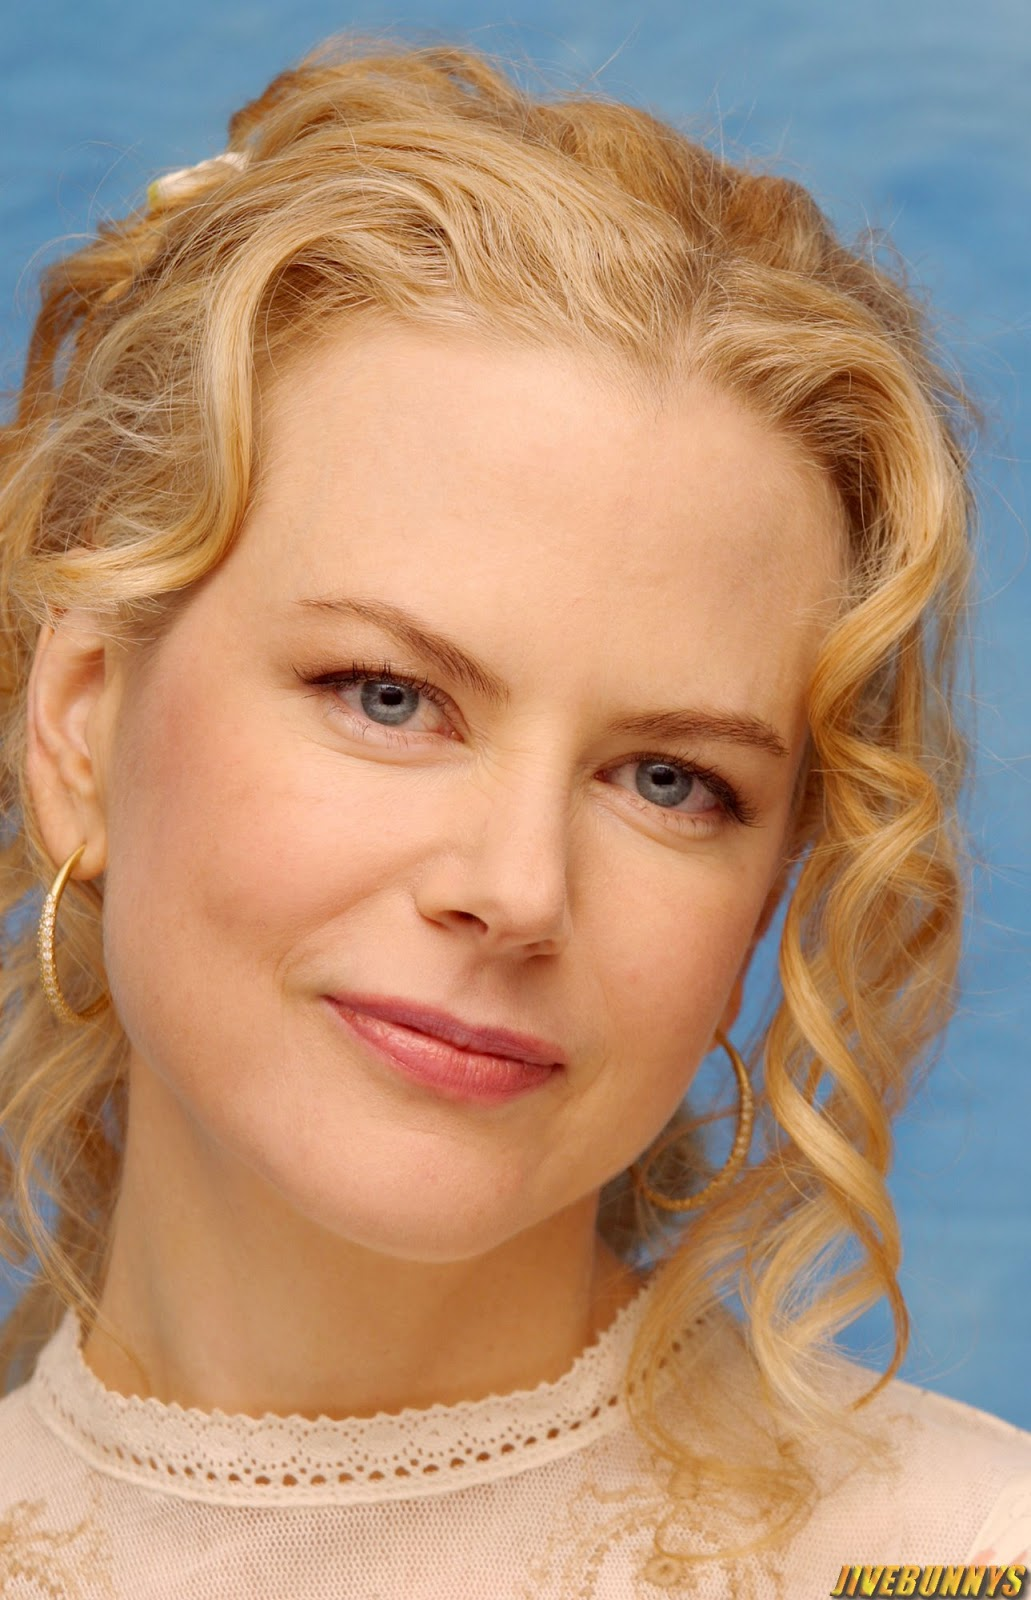 Jivebunnys Female Celebrity Picture Gallery: Nicole Kidman ... Beyonce Knowles